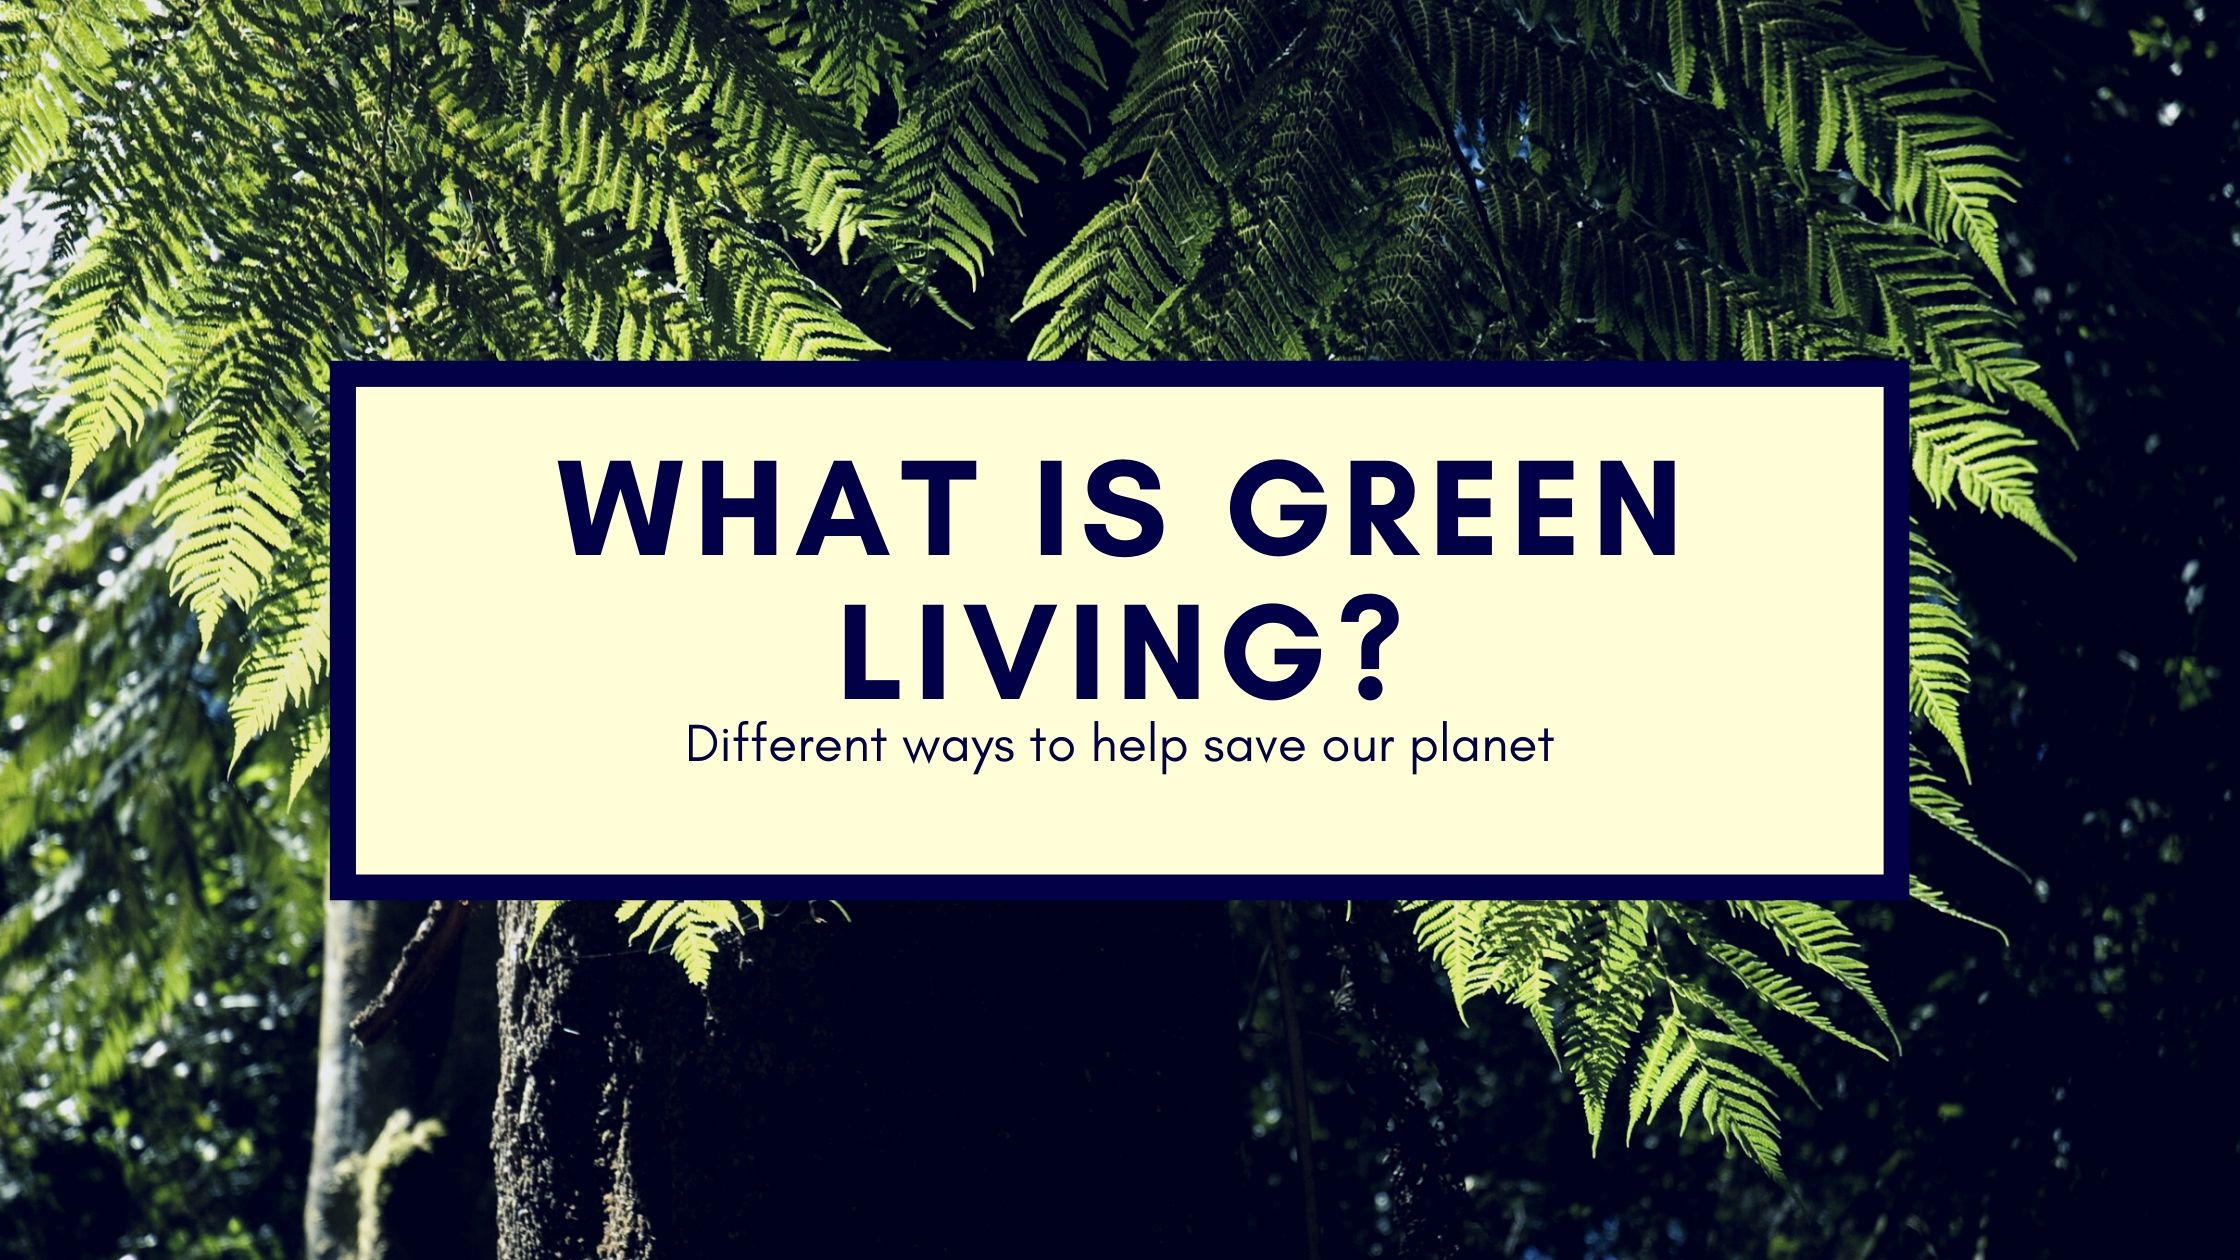 Green living and eco-friendly lifestyle options